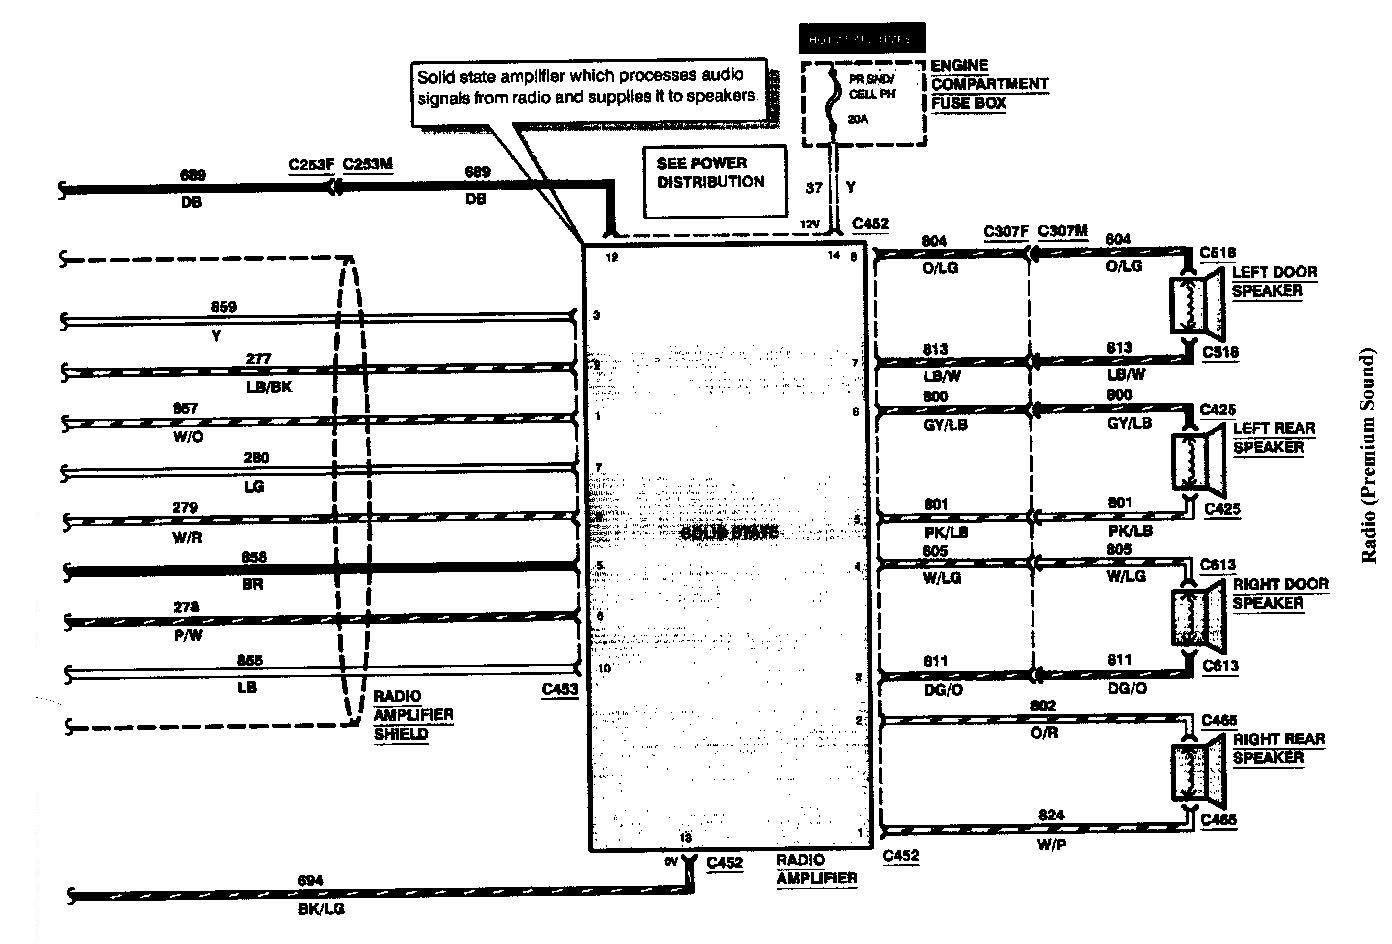 95 Mark 8 jbl wiring diagram needed Lincolns OnLine Message Forum – Lincoln 98 Mark 8 Fuse Diagram